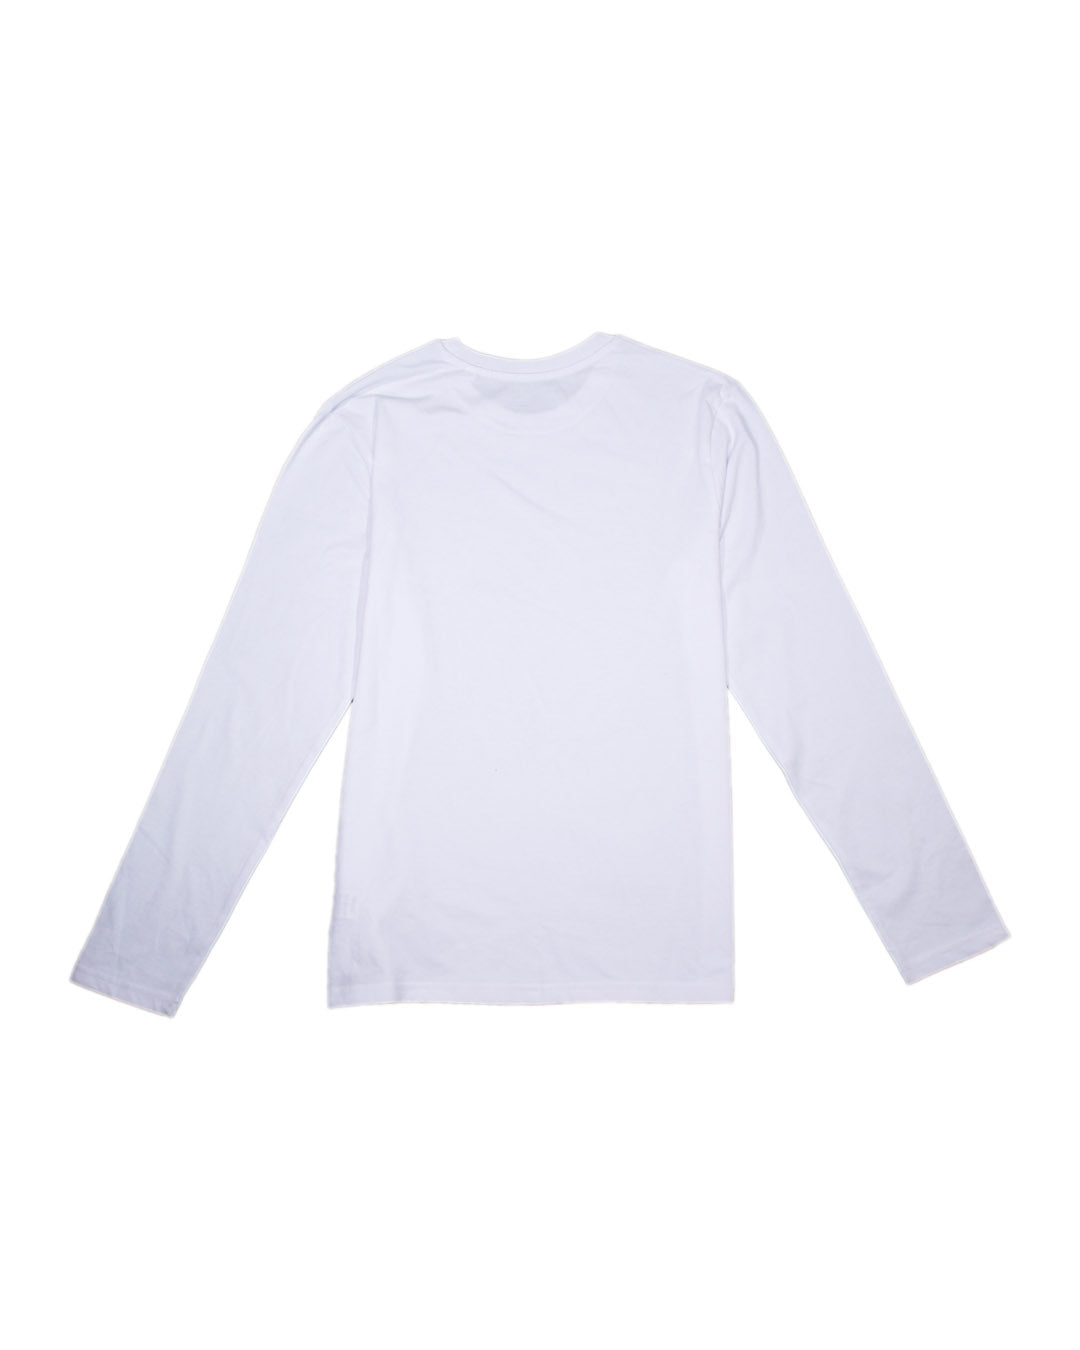 The Alternative - Legacy Organic Long Sleeve T-Shirt White